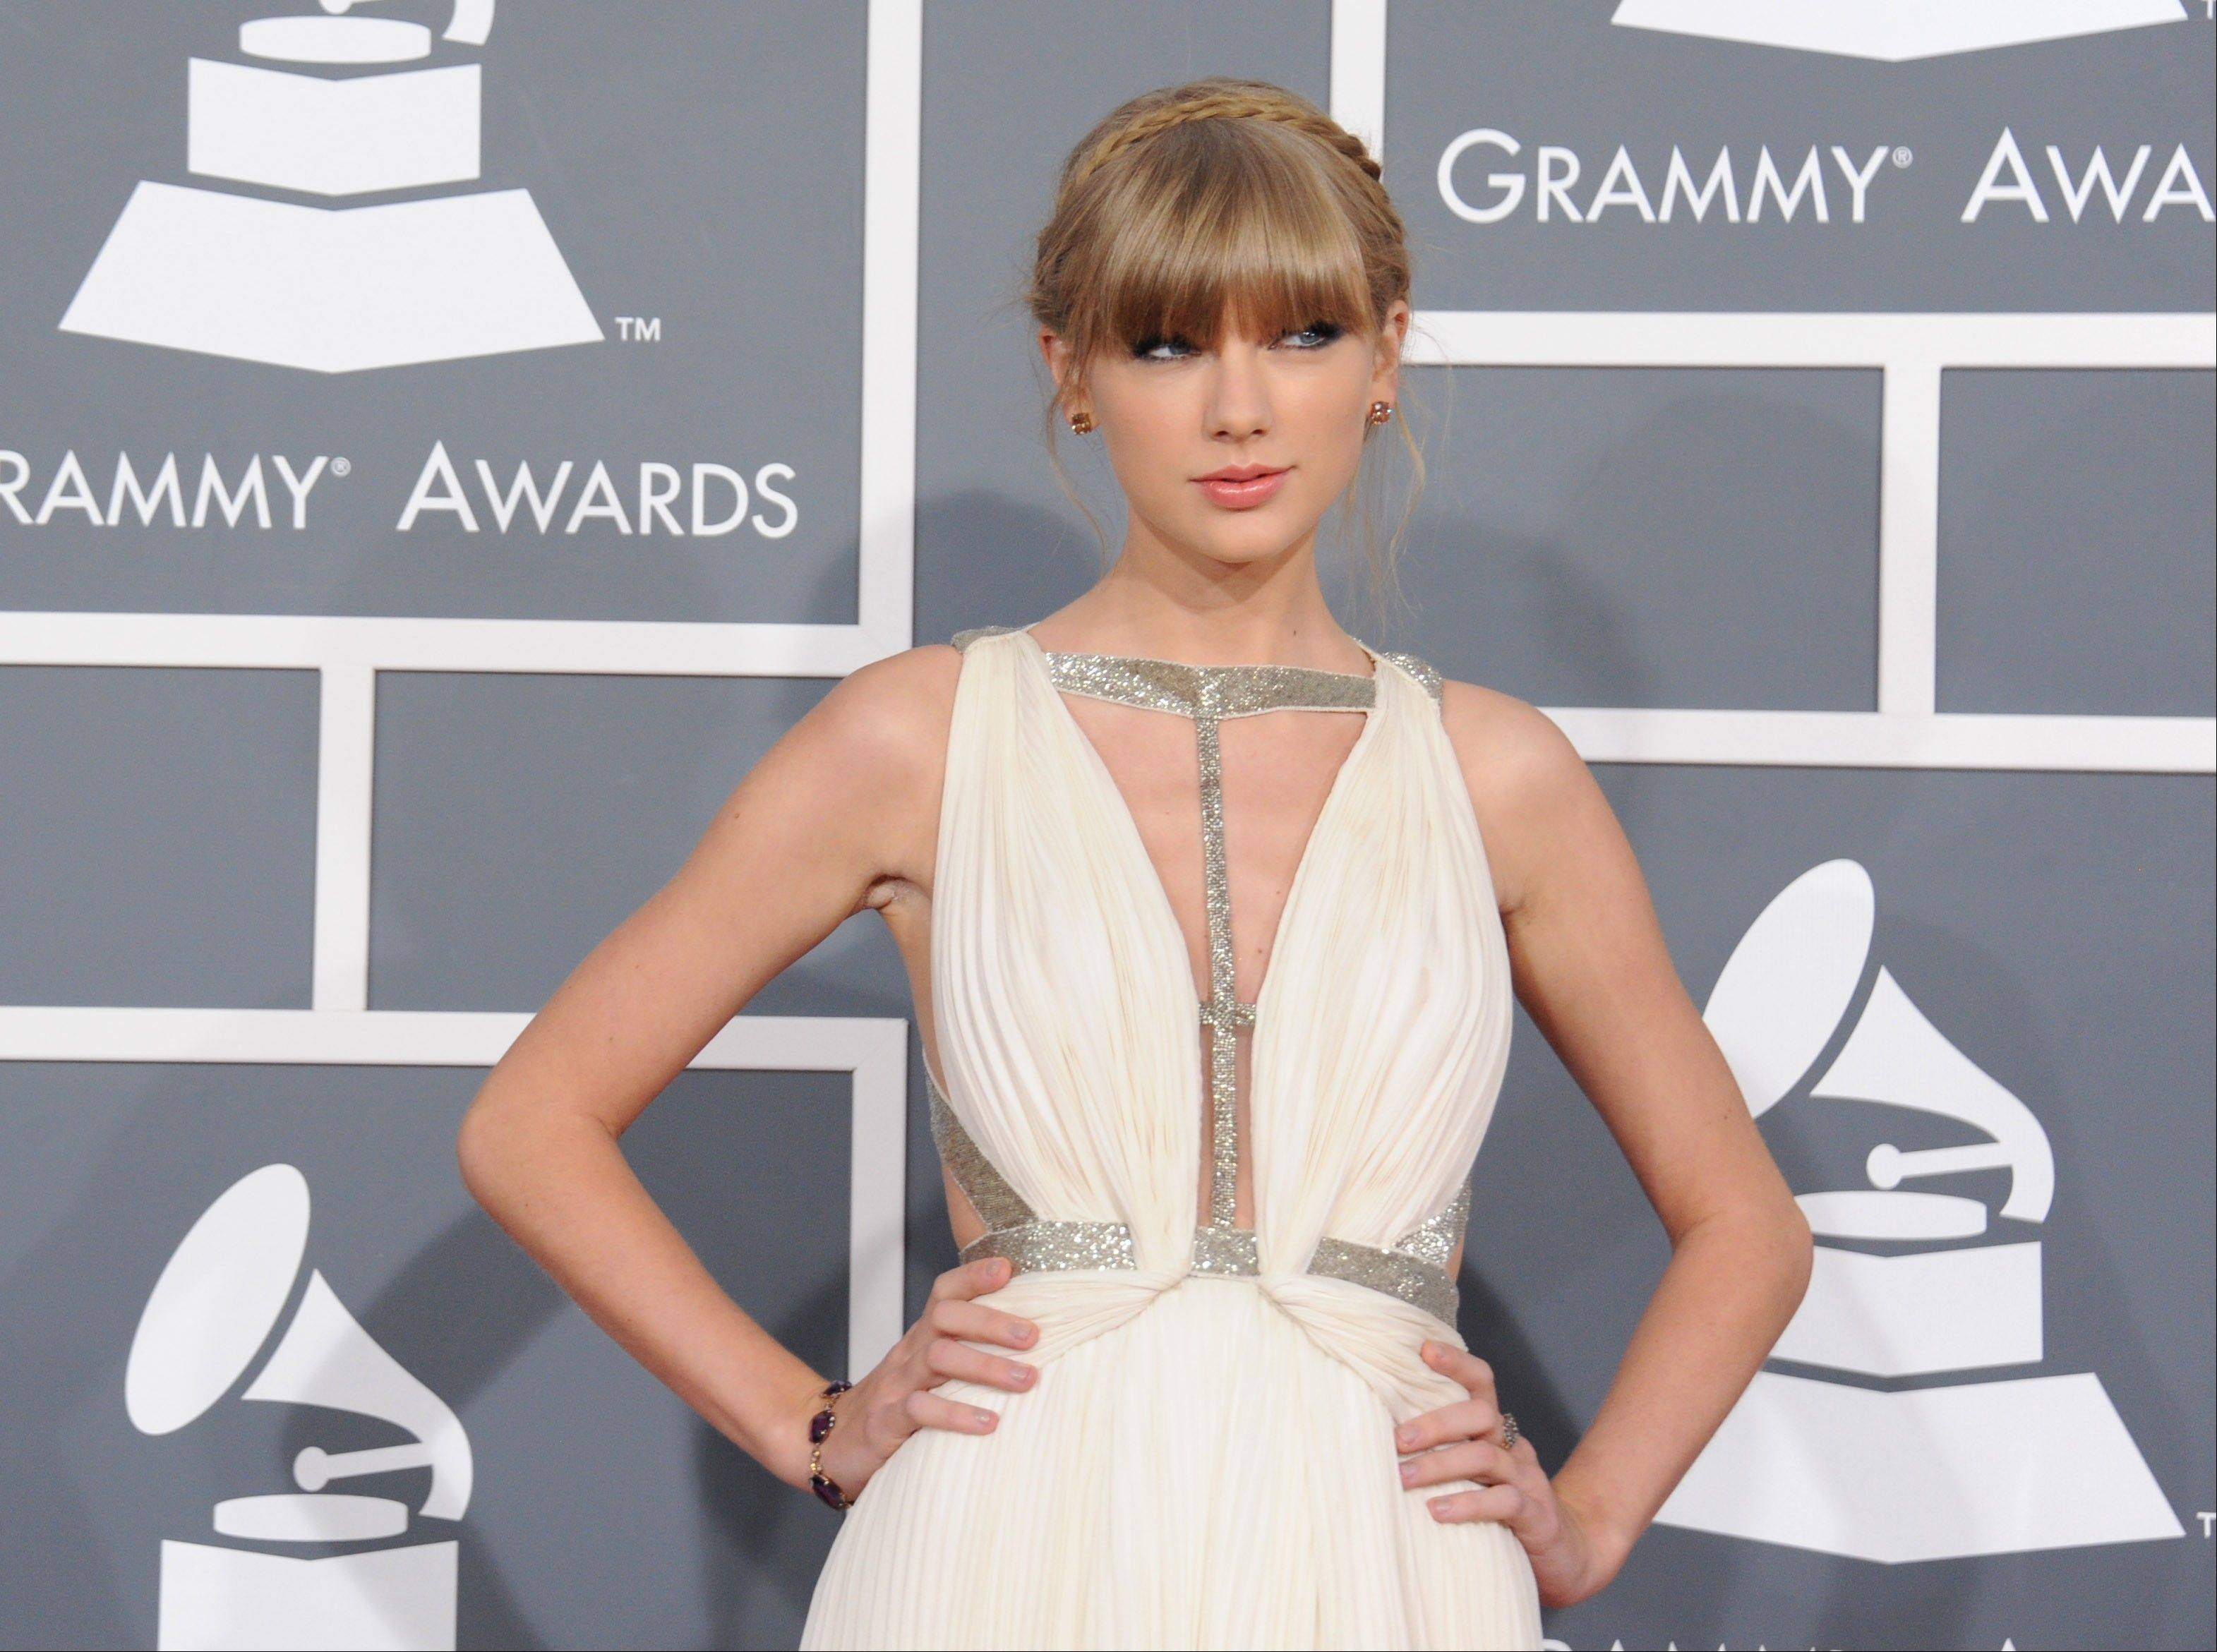 Singer-songwriter Taylor Swift arrives at the 55th annual Grammy Awards on Sunday, Feb. 10, 2013, in Los Angeles.